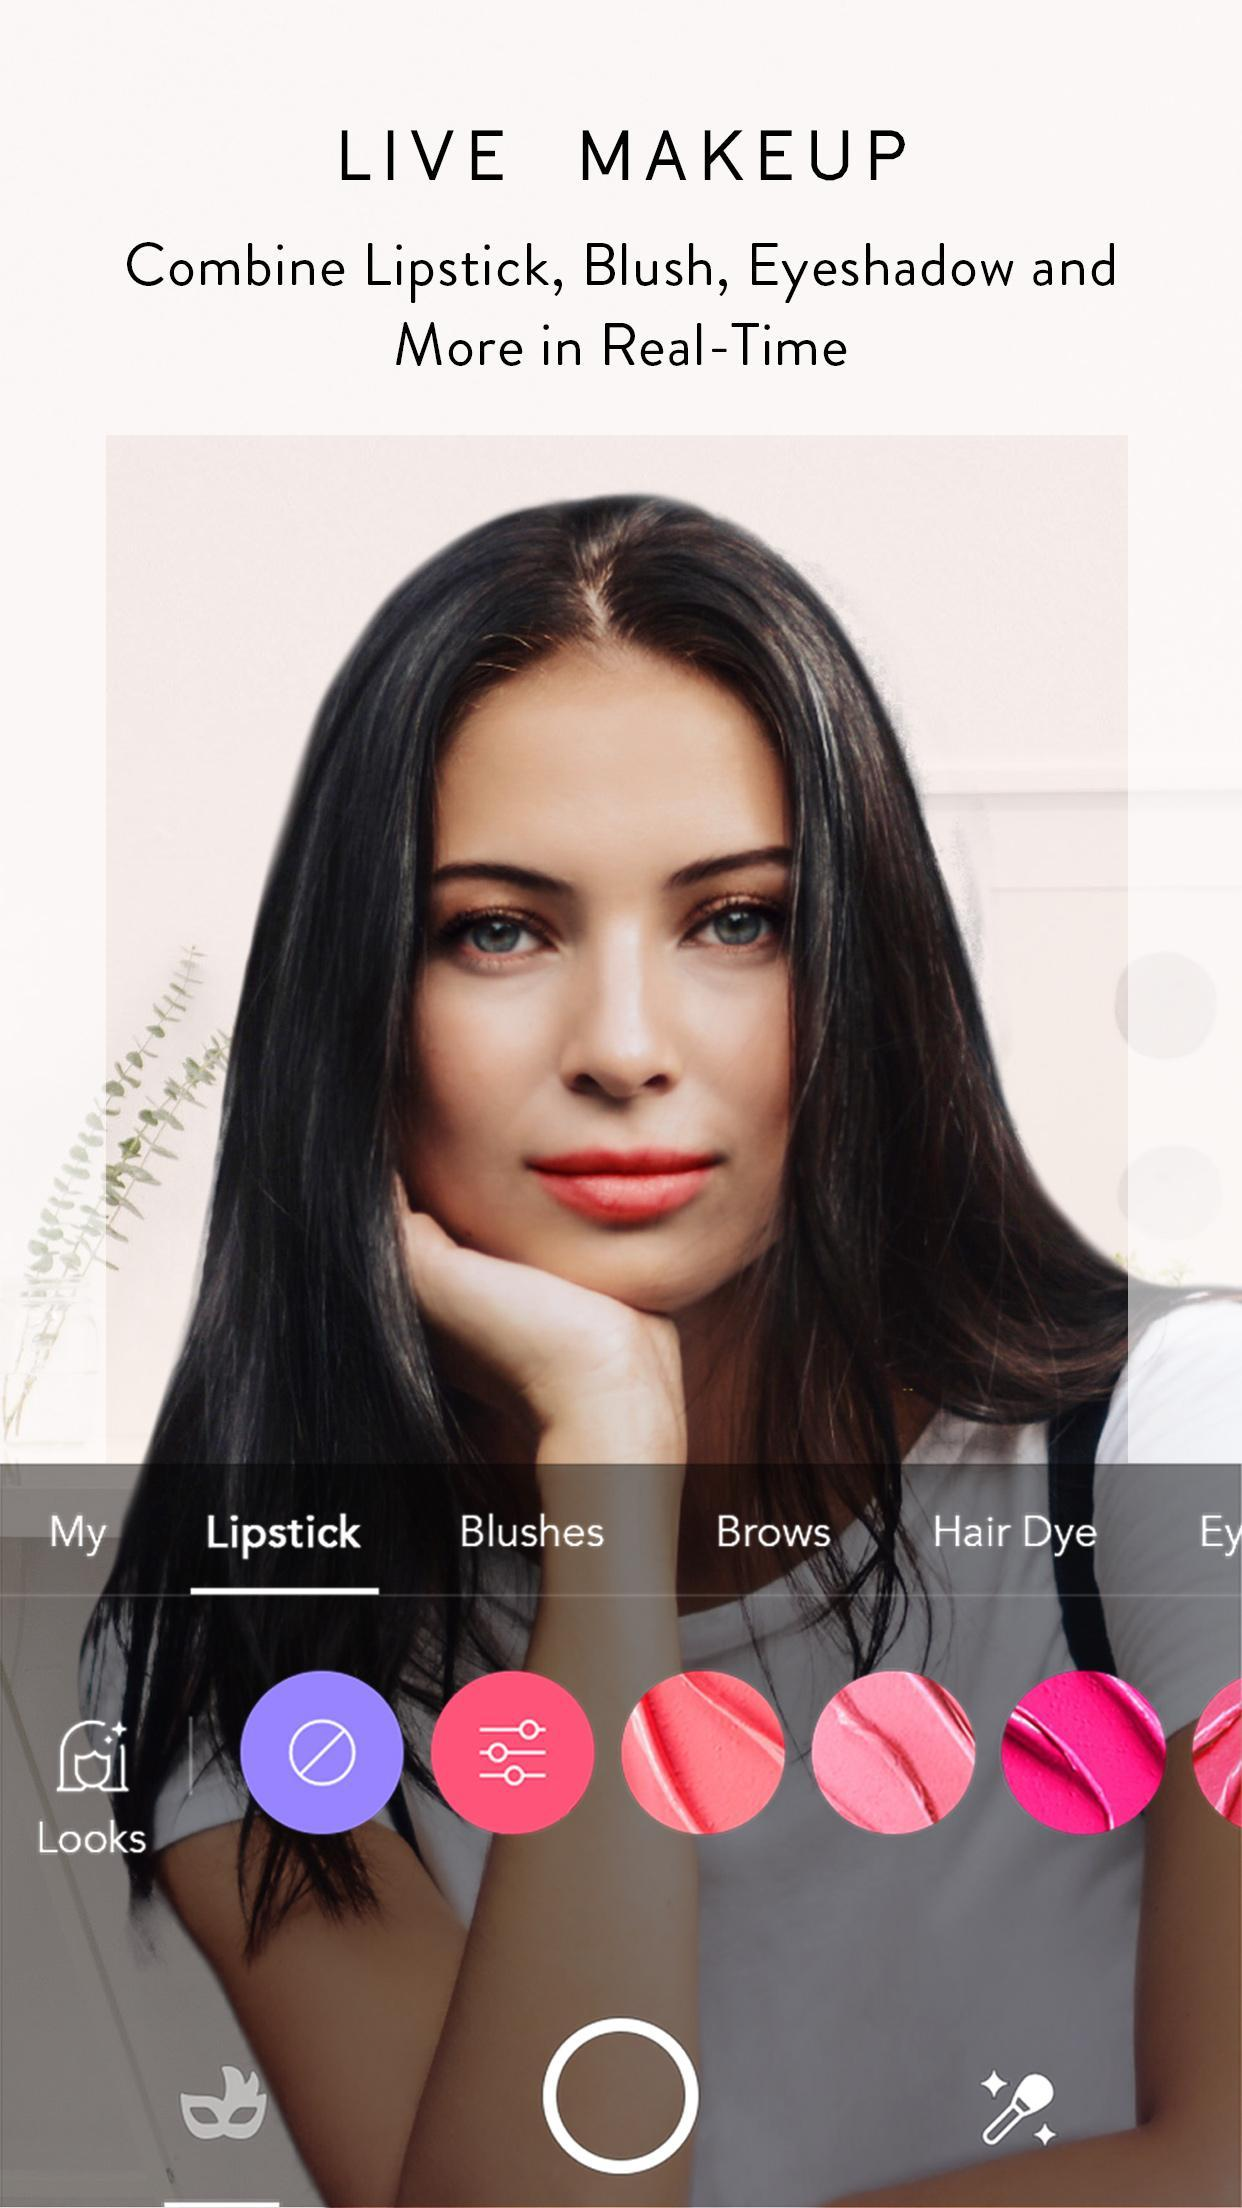 MakeupPlus Your Own Virtual Makeup Artist 5.3.27 Screenshot 1